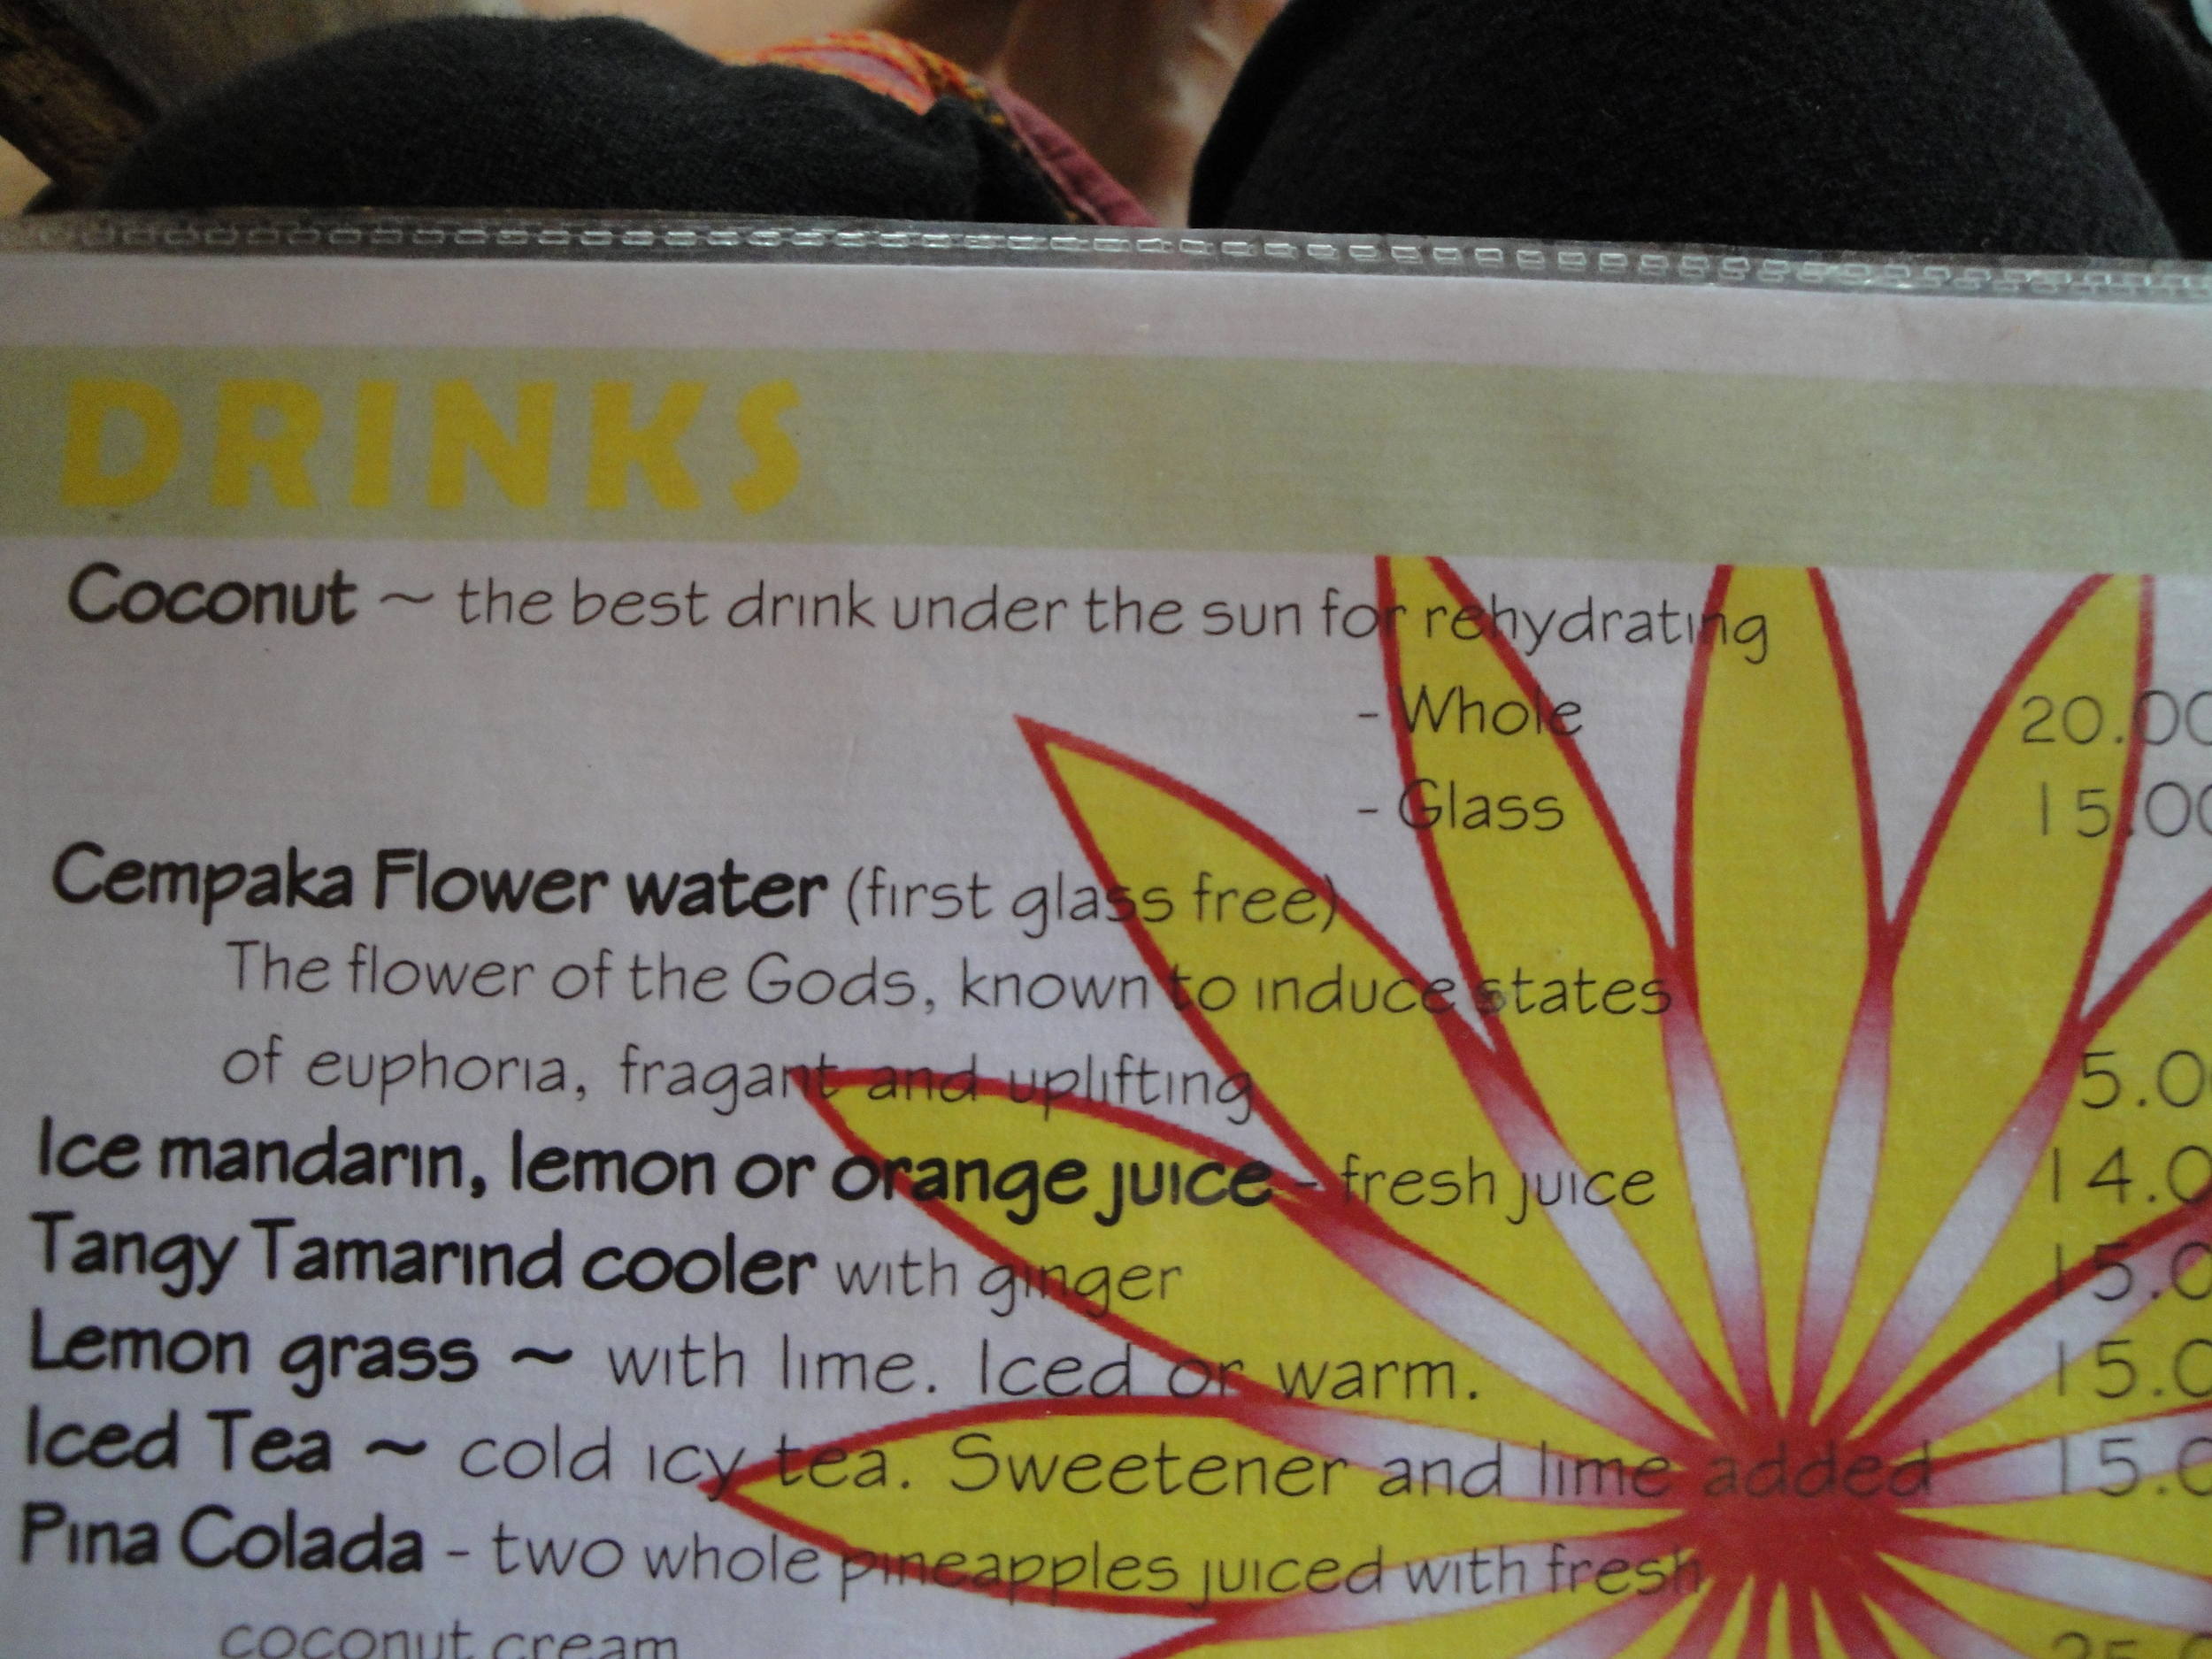 At Yellow Flower they serve you a complementary glass of Cempaka flower water... so I definitely came back!